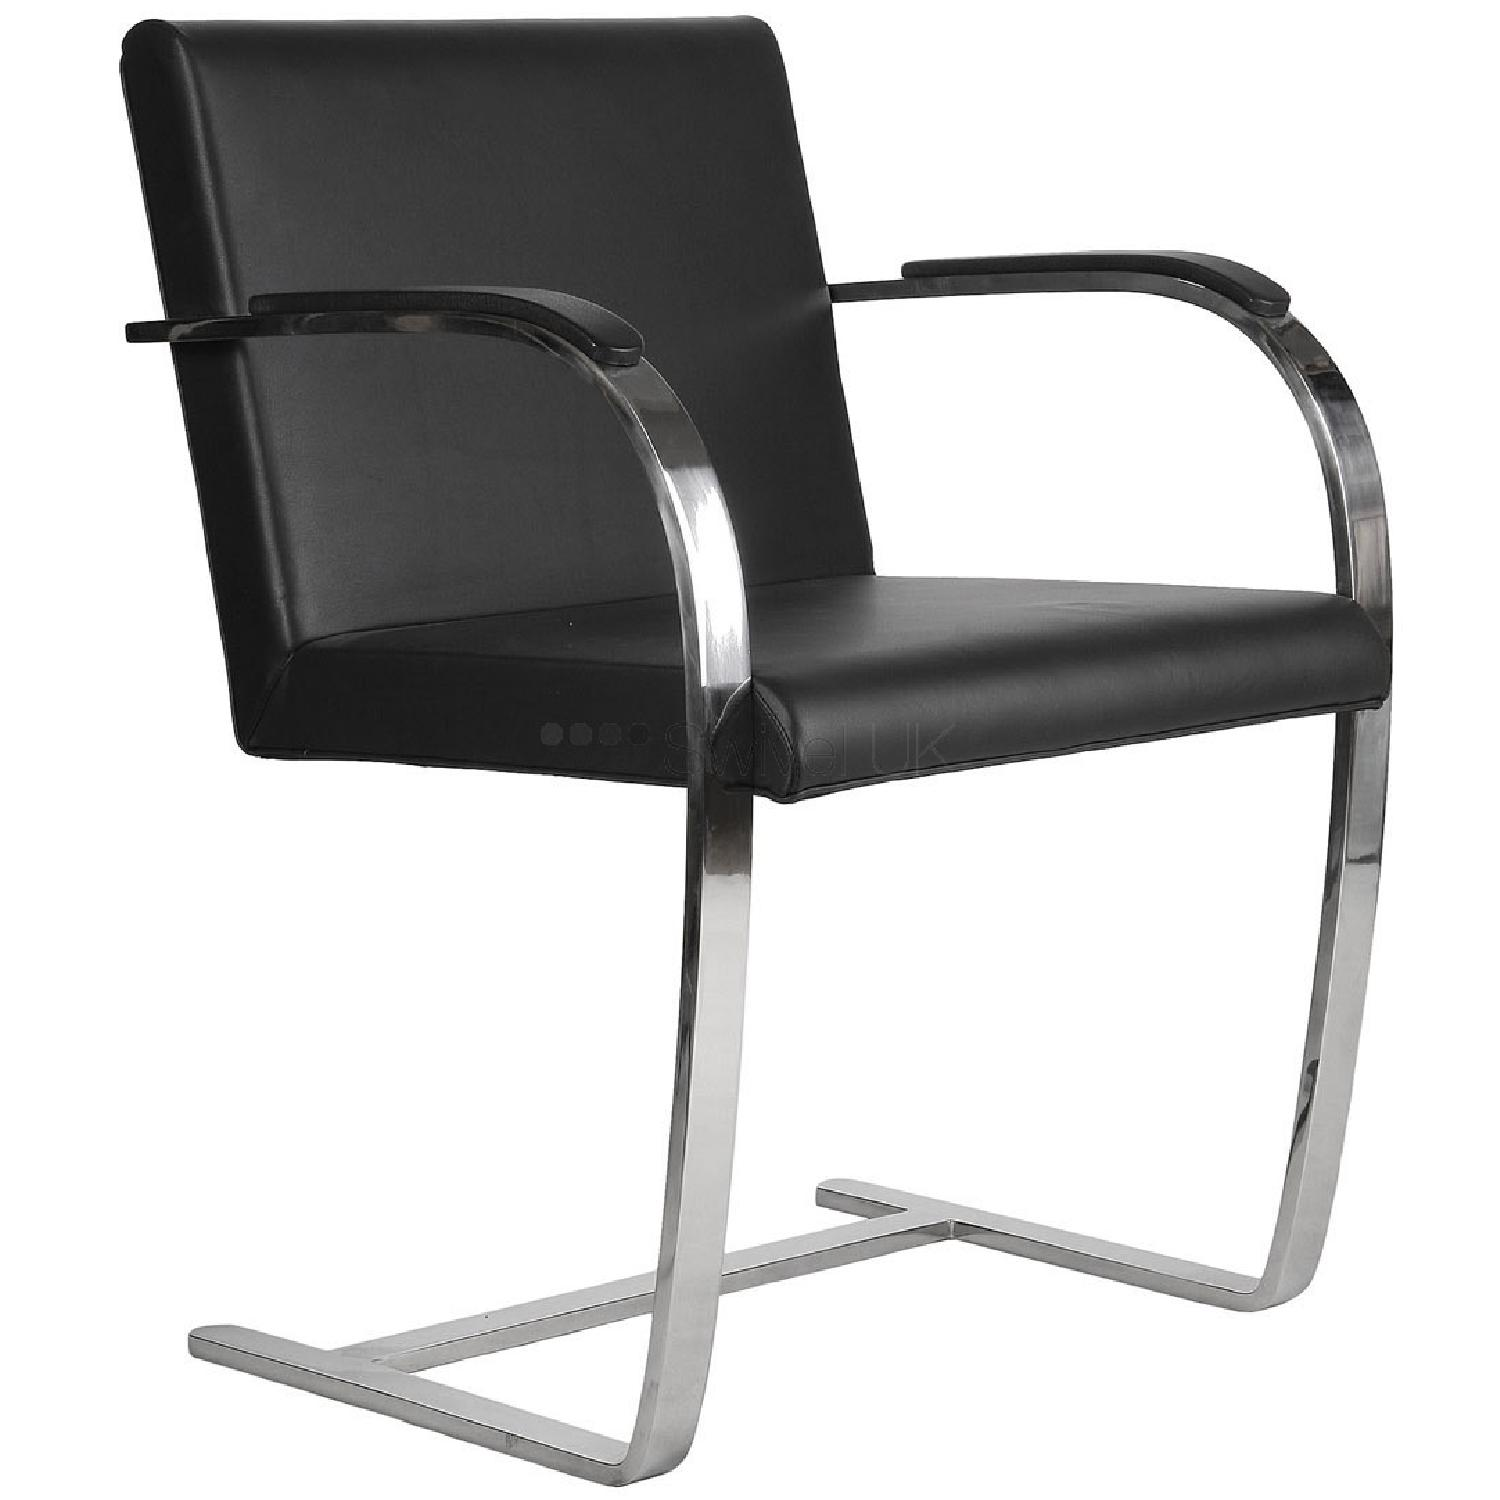 Knoll Leather Flat Bar Brno Chair by Mies Van Der Rohe AptDeco